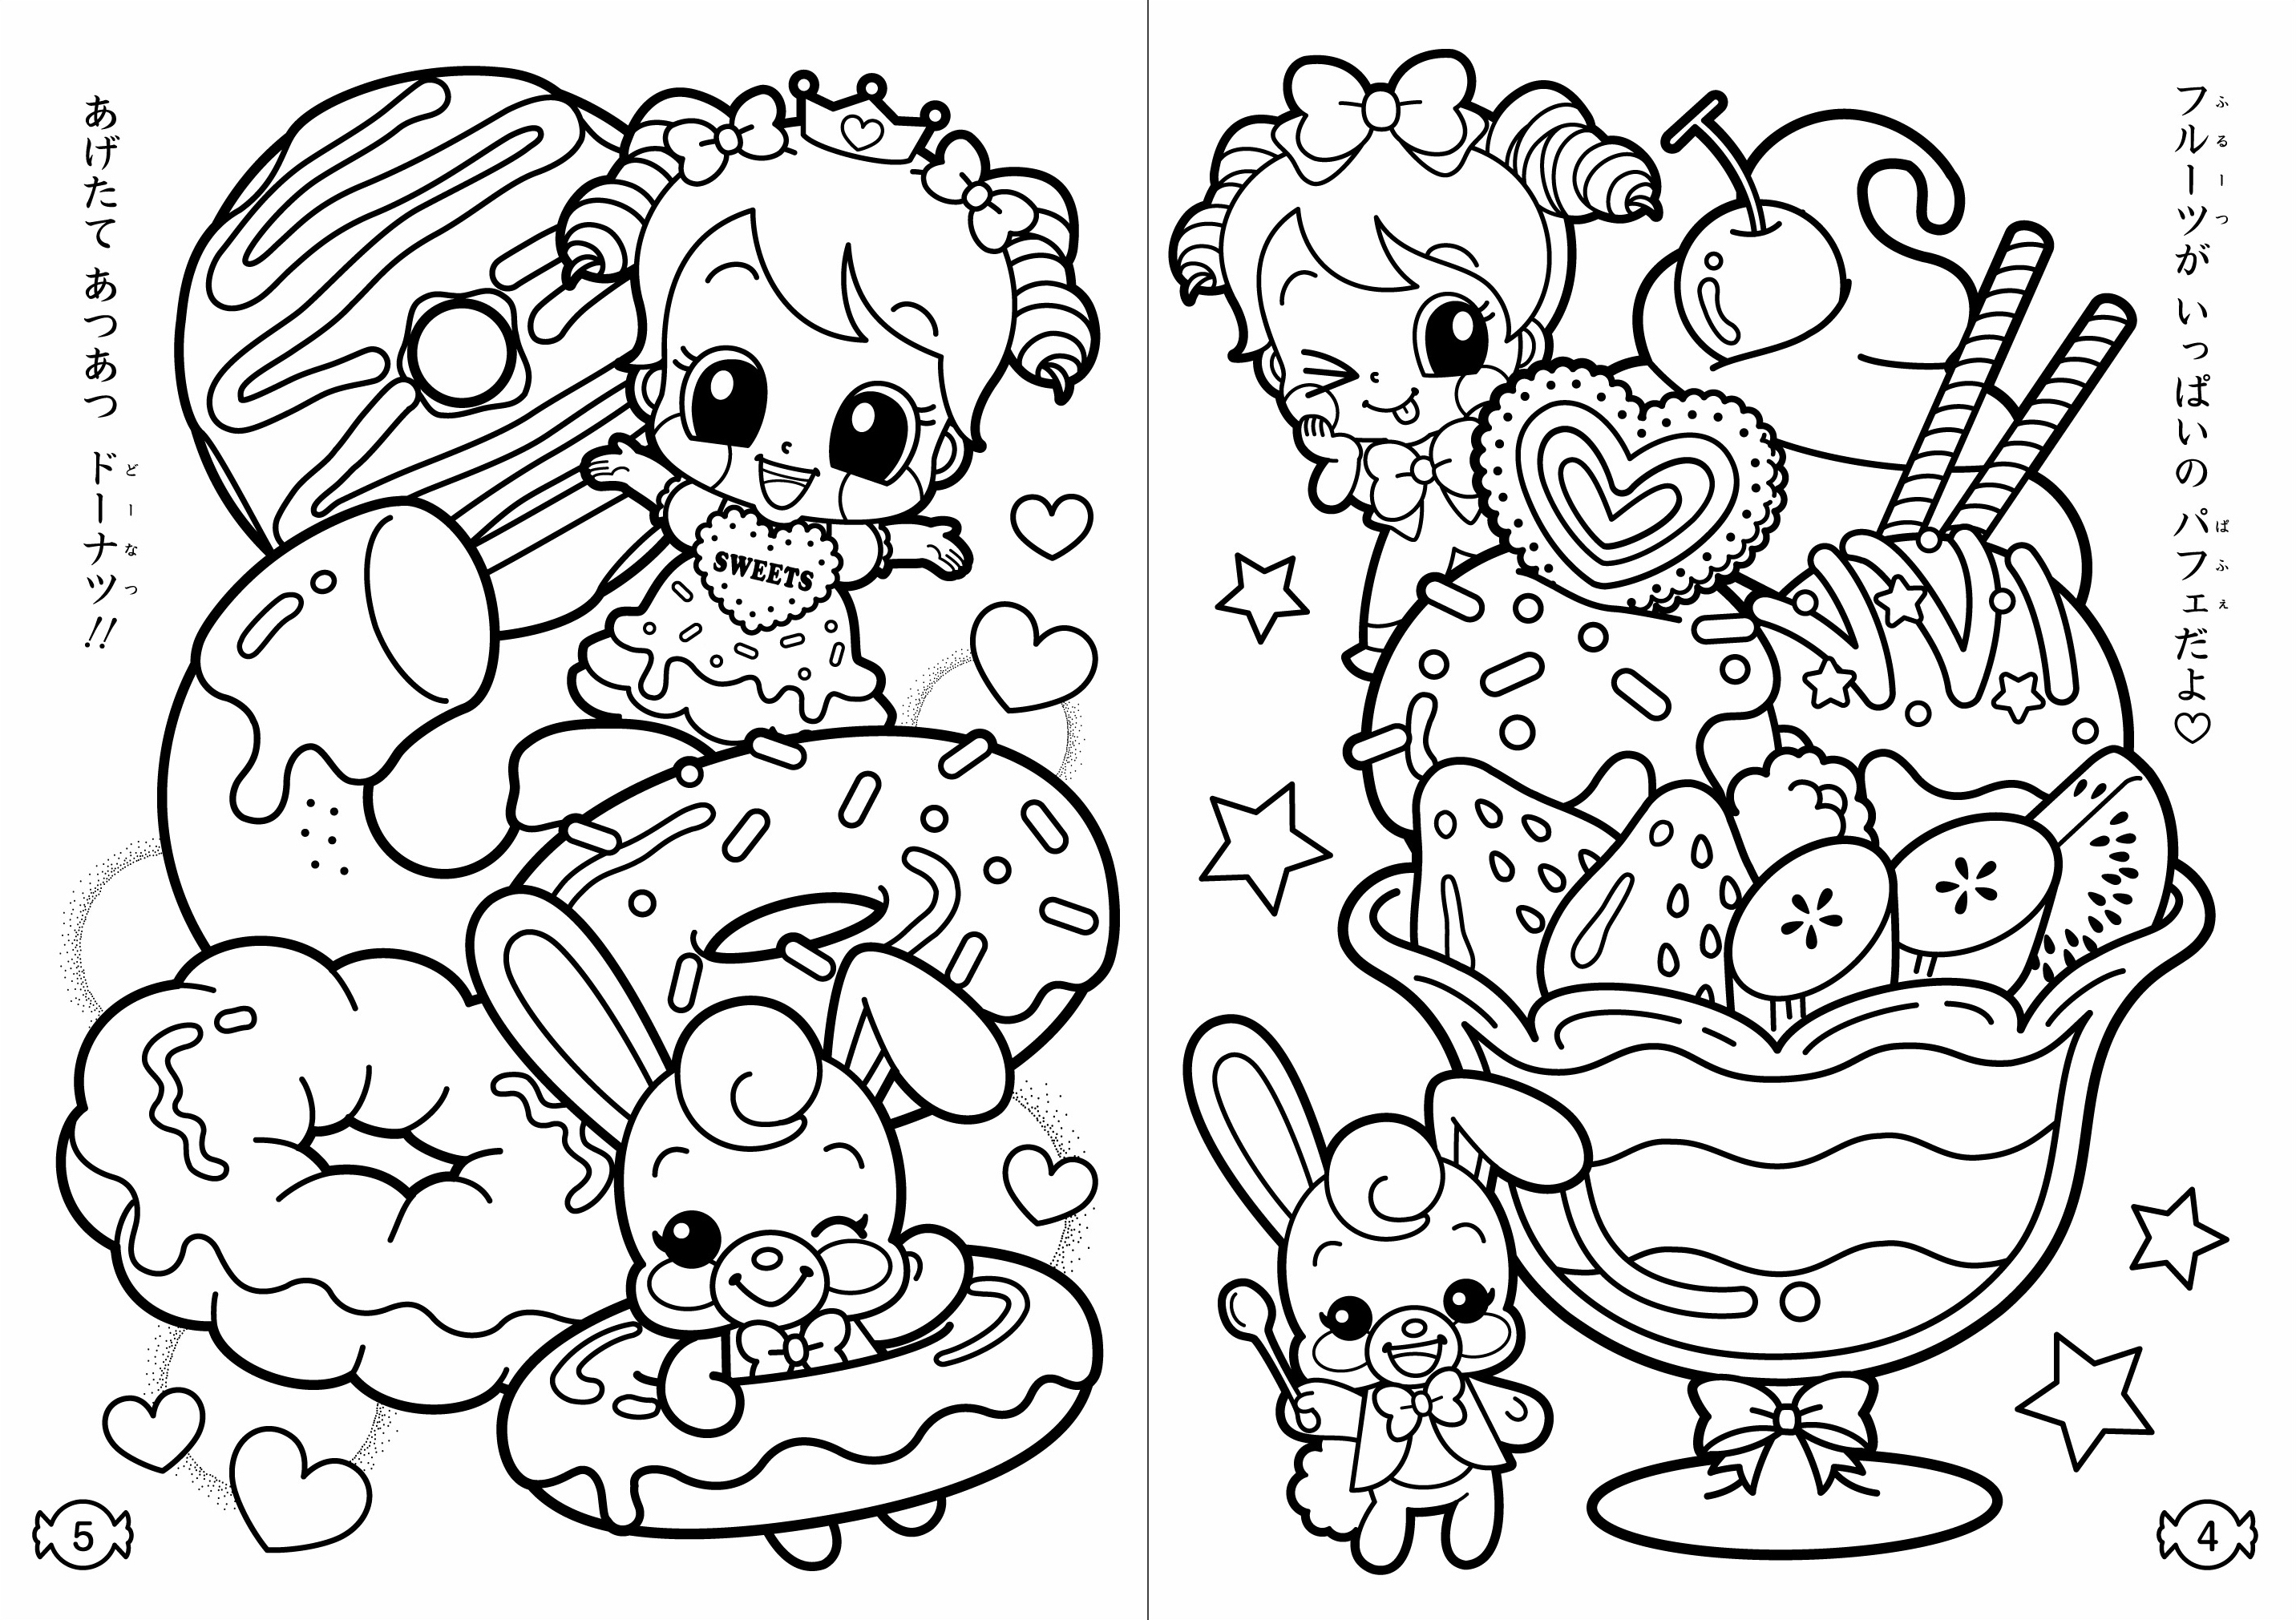 kawaii colouring pages kawaii free to color for children kawaii kids coloring pages kawaii colouring pages